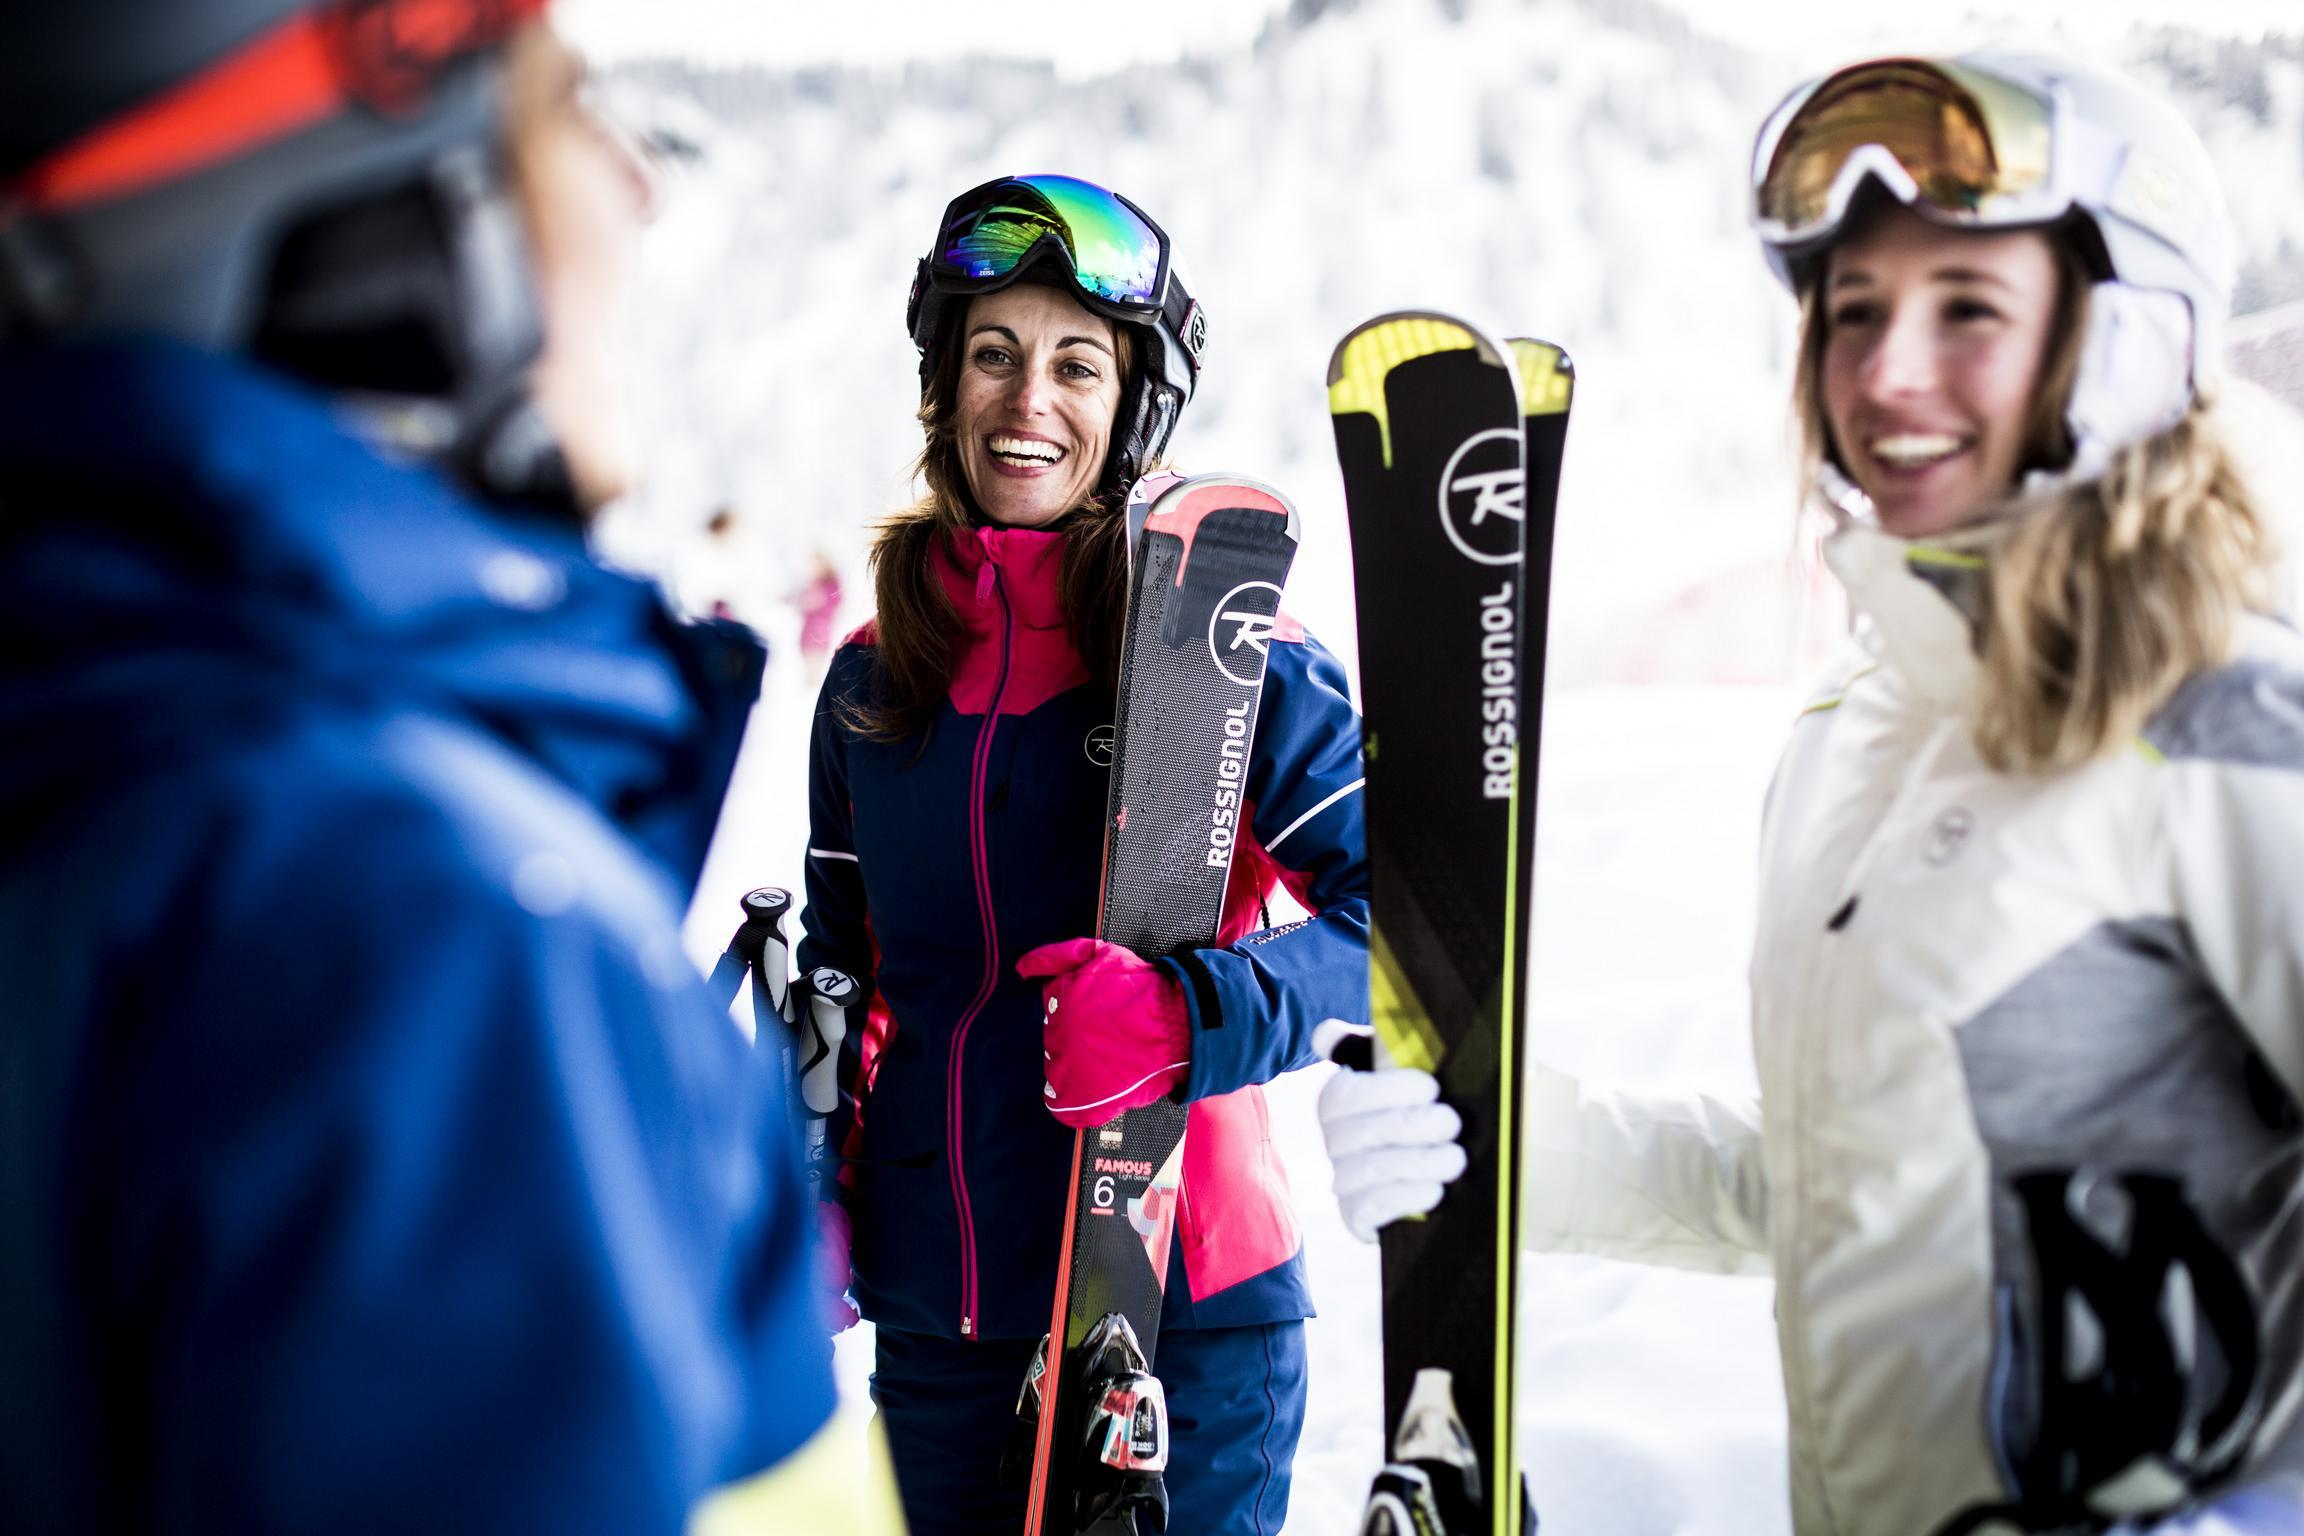 Colección Rossignol 2016/2017 - WOMEN ON PISTE - FAMOUS